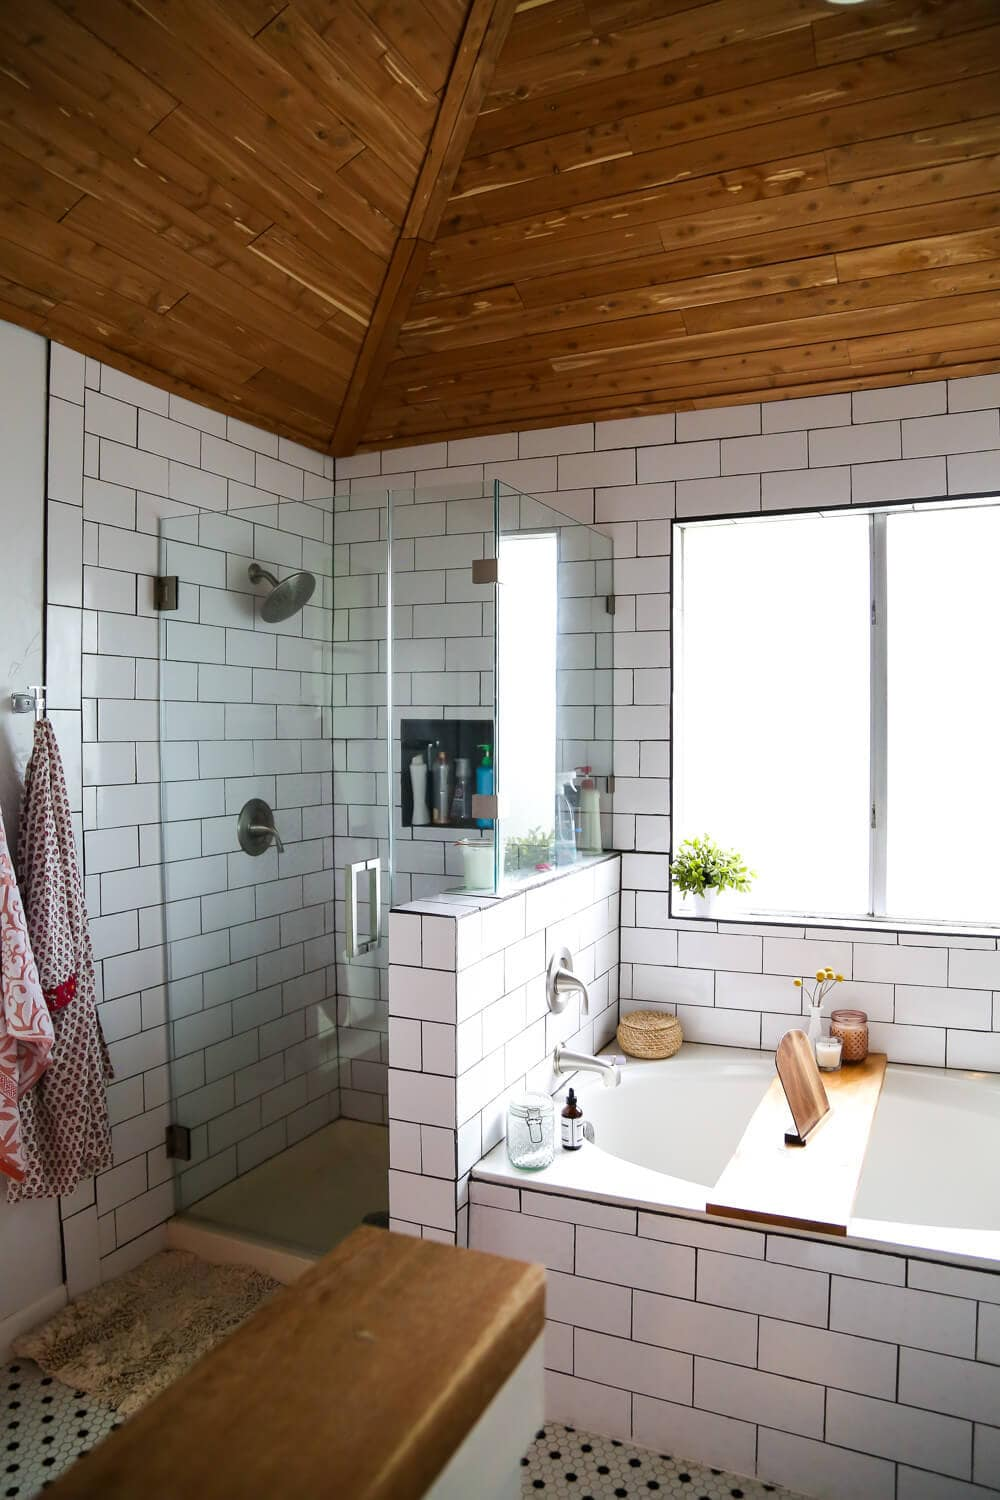 DIY master bathroom remodel - how to remodel a bathroom. A master bathroom with white subway tile, cedar-planked ceilings, and a glass shower